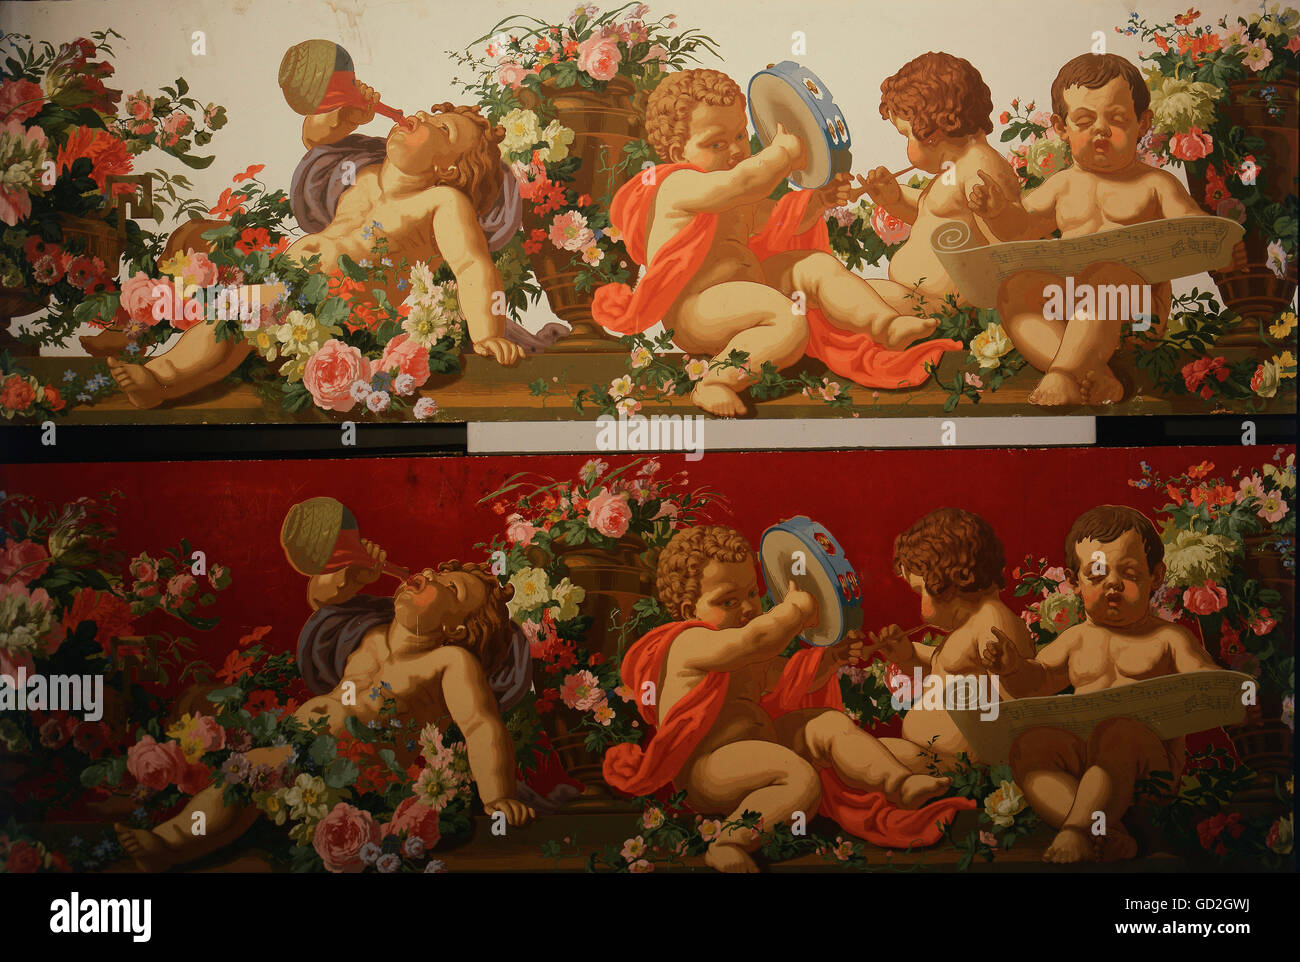 fine arts, wallpaper, frieze with putti in front of bright and dark background, second half 19th century, German - Stock Image